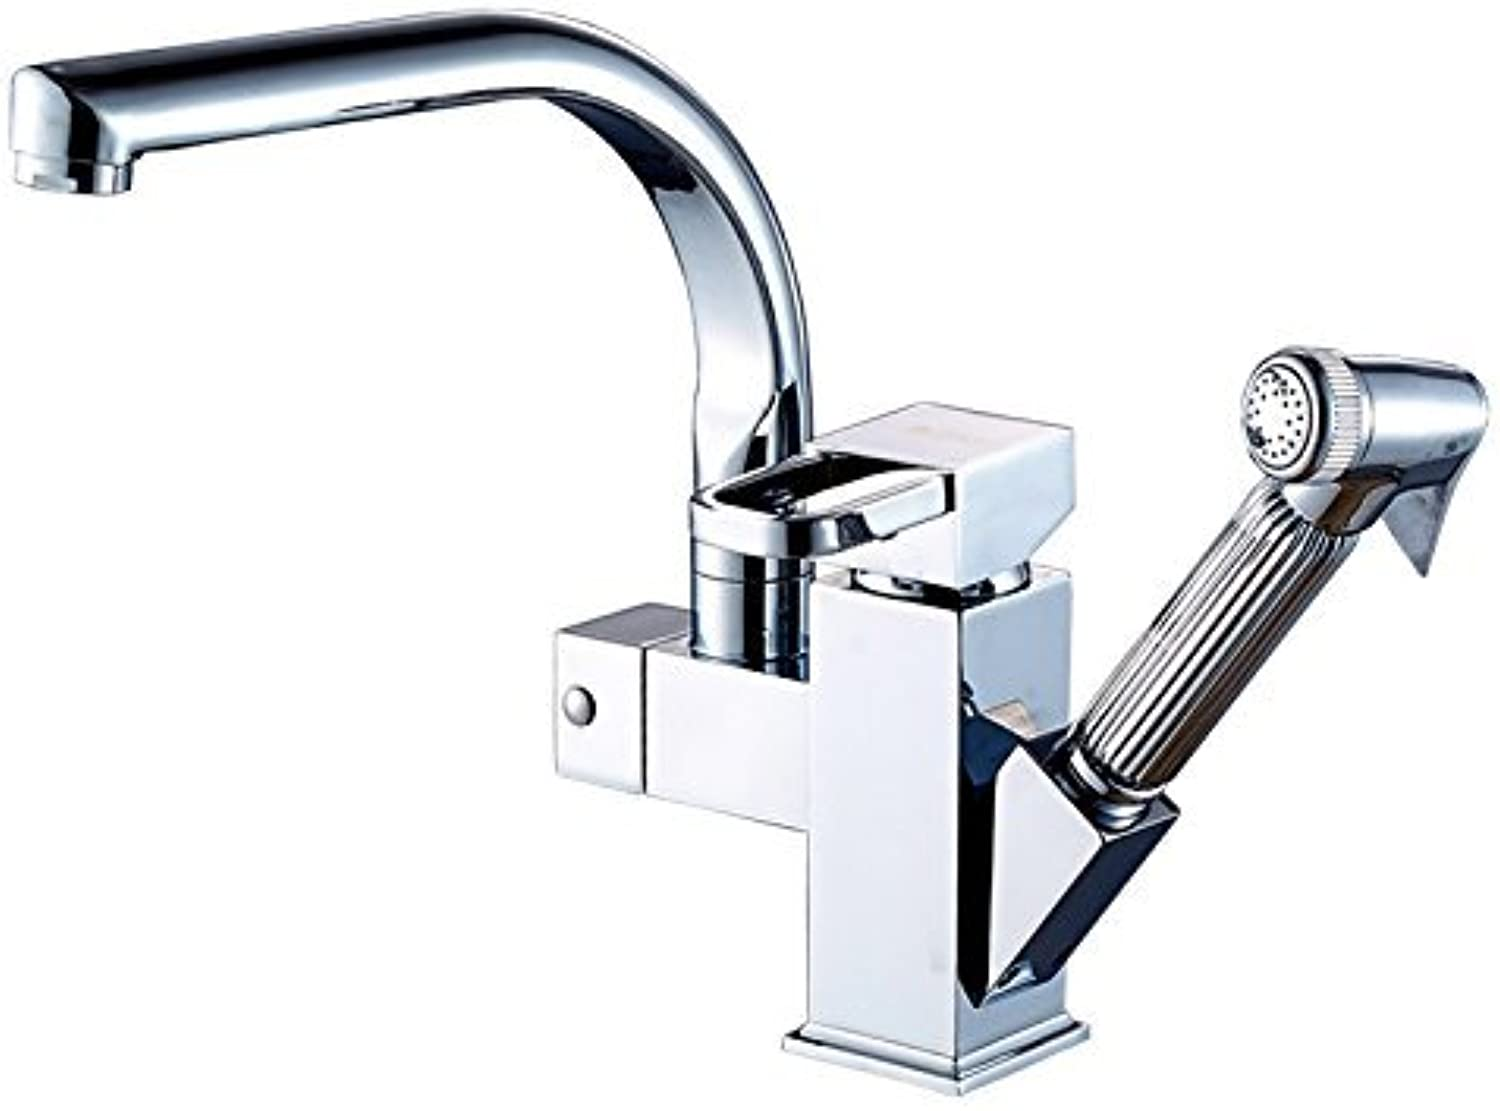 The Full of Cold and hot Water Connection Kitchen Copper Subscription Stretch wash basins Universal Water Tank Faucet